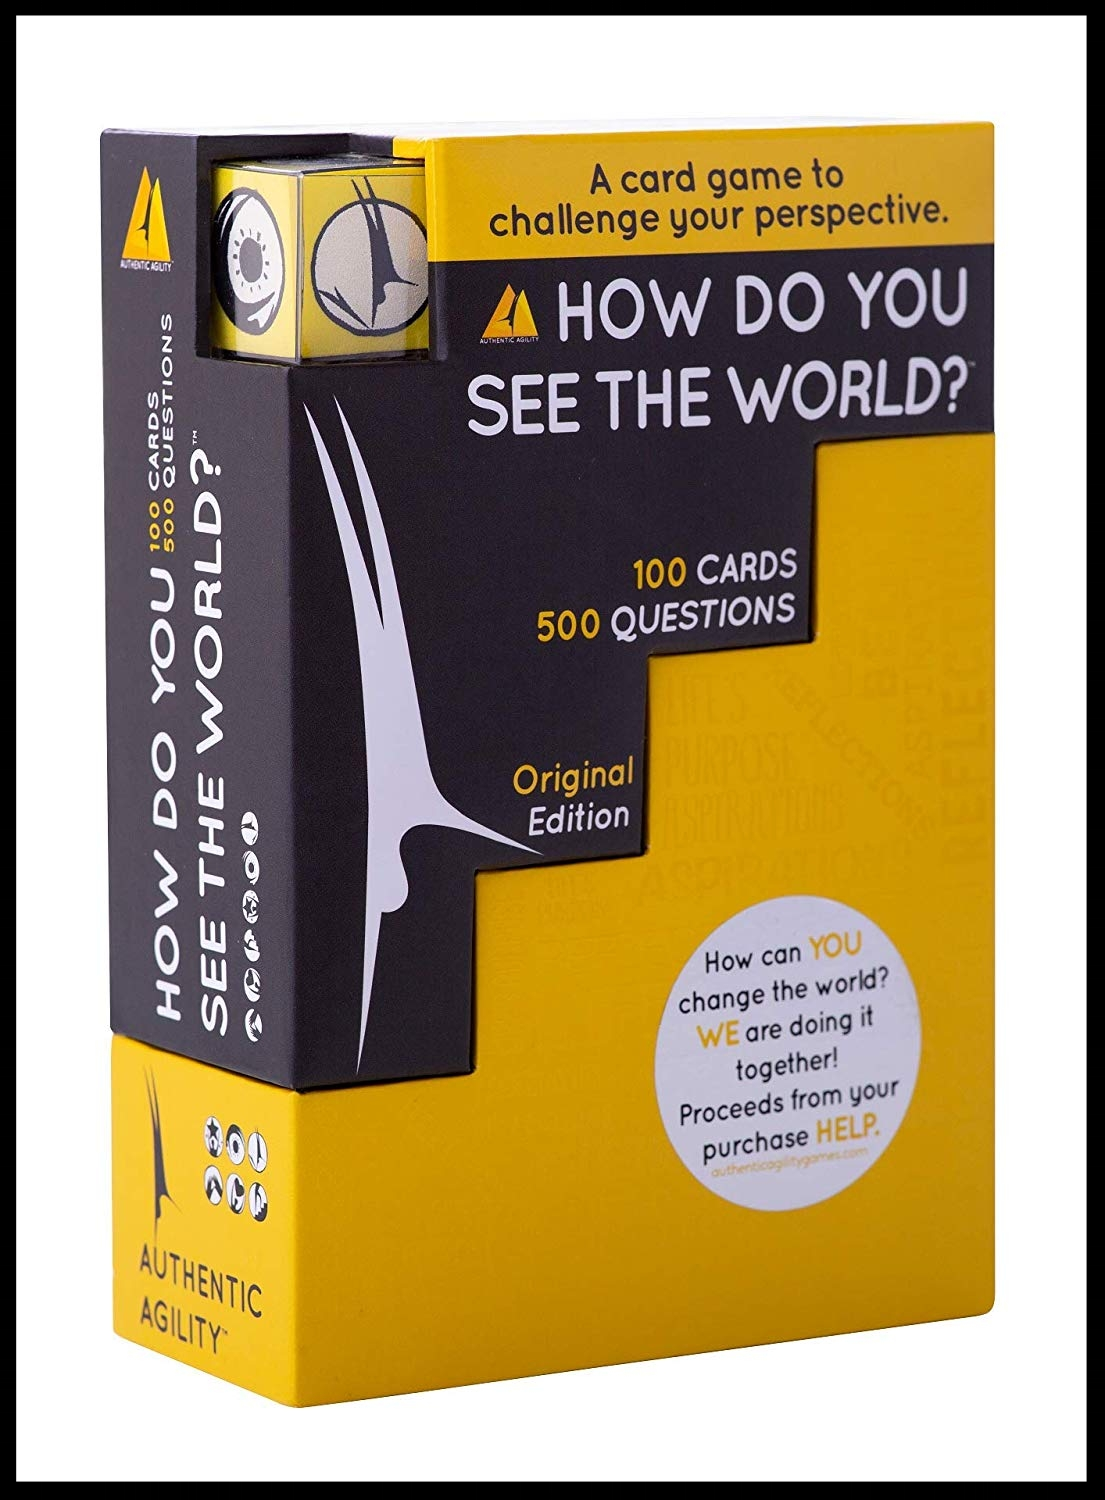 how do you see the world cards.jpg